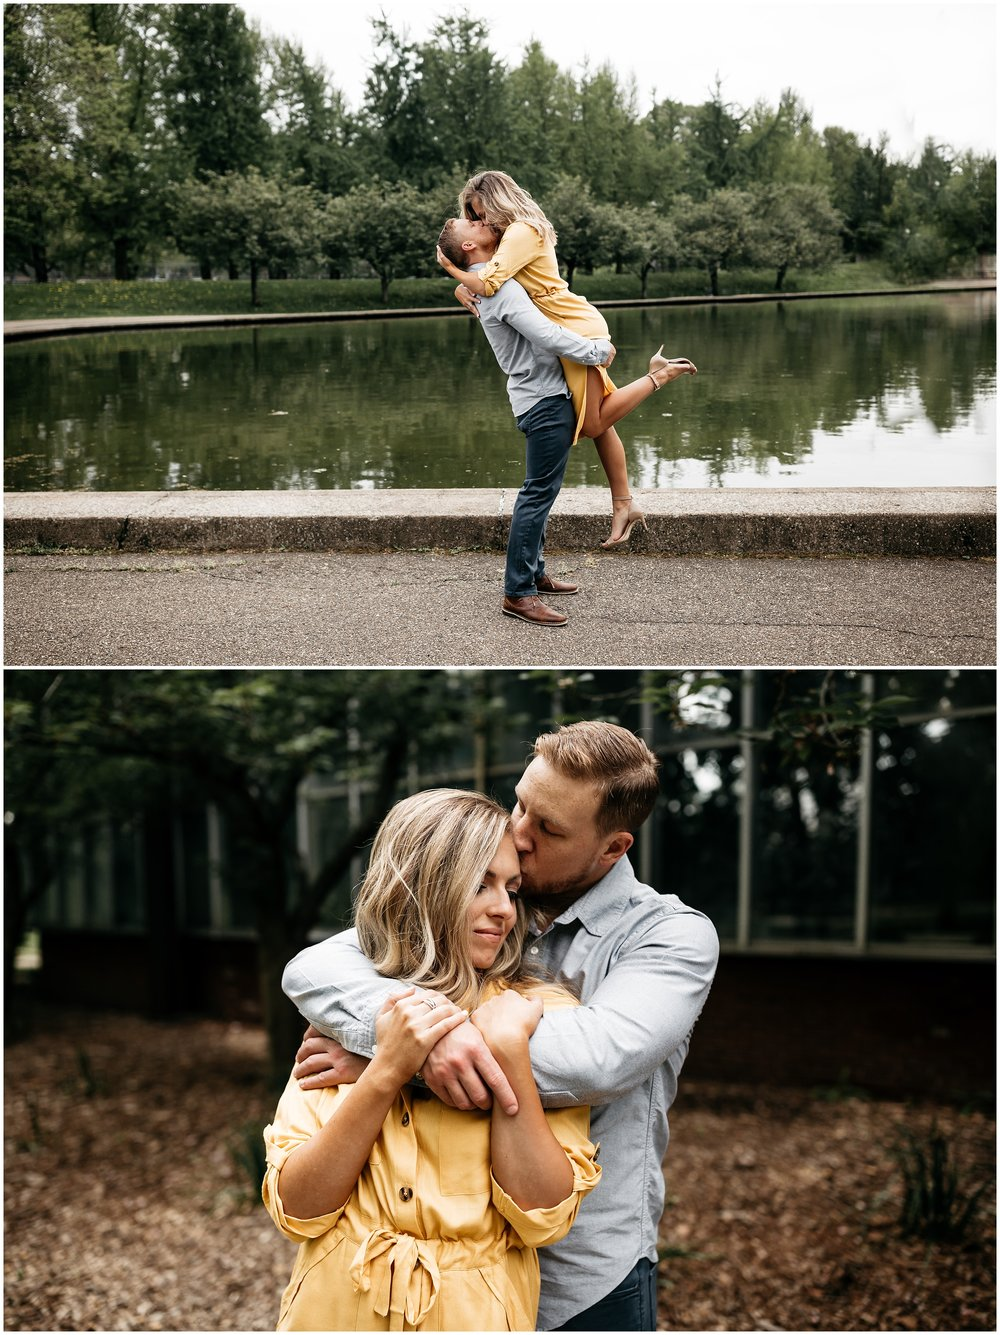 pittsburghengagementphotos_0008.jpg